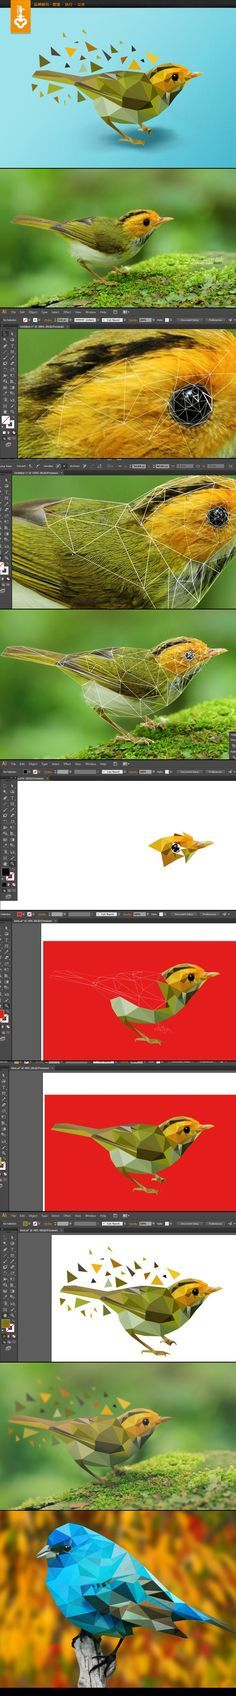 How to make polygon art from an image on Photoshop Plakat Design, Graphisches Design, Bird Design, Affinity Photo, Geometric Art, Geometric Animal, Geometric Drawing, Geometric Patterns, Affinity Designer